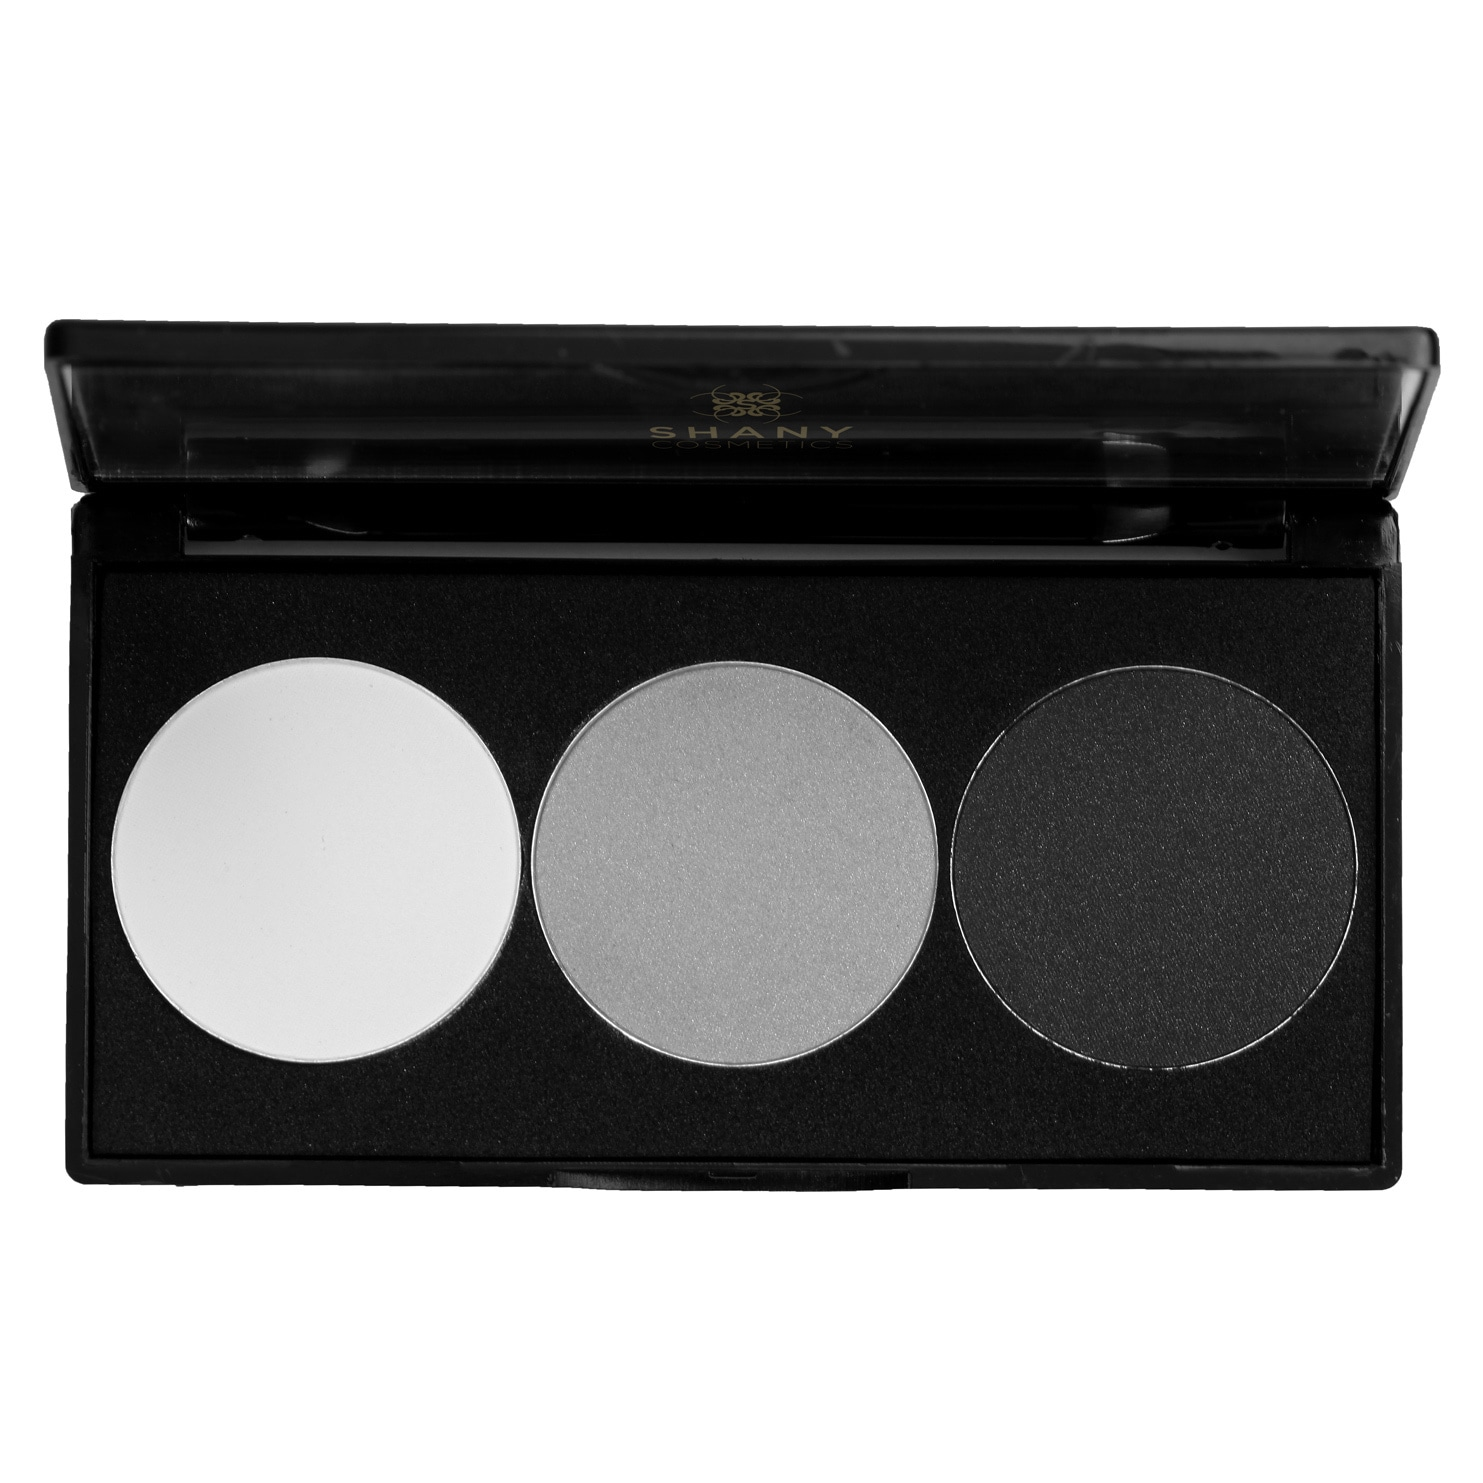 SHANY Cosmetics Shany Everyday Travel Trio Moonless Night Eye Shadow Palette at Sears.com